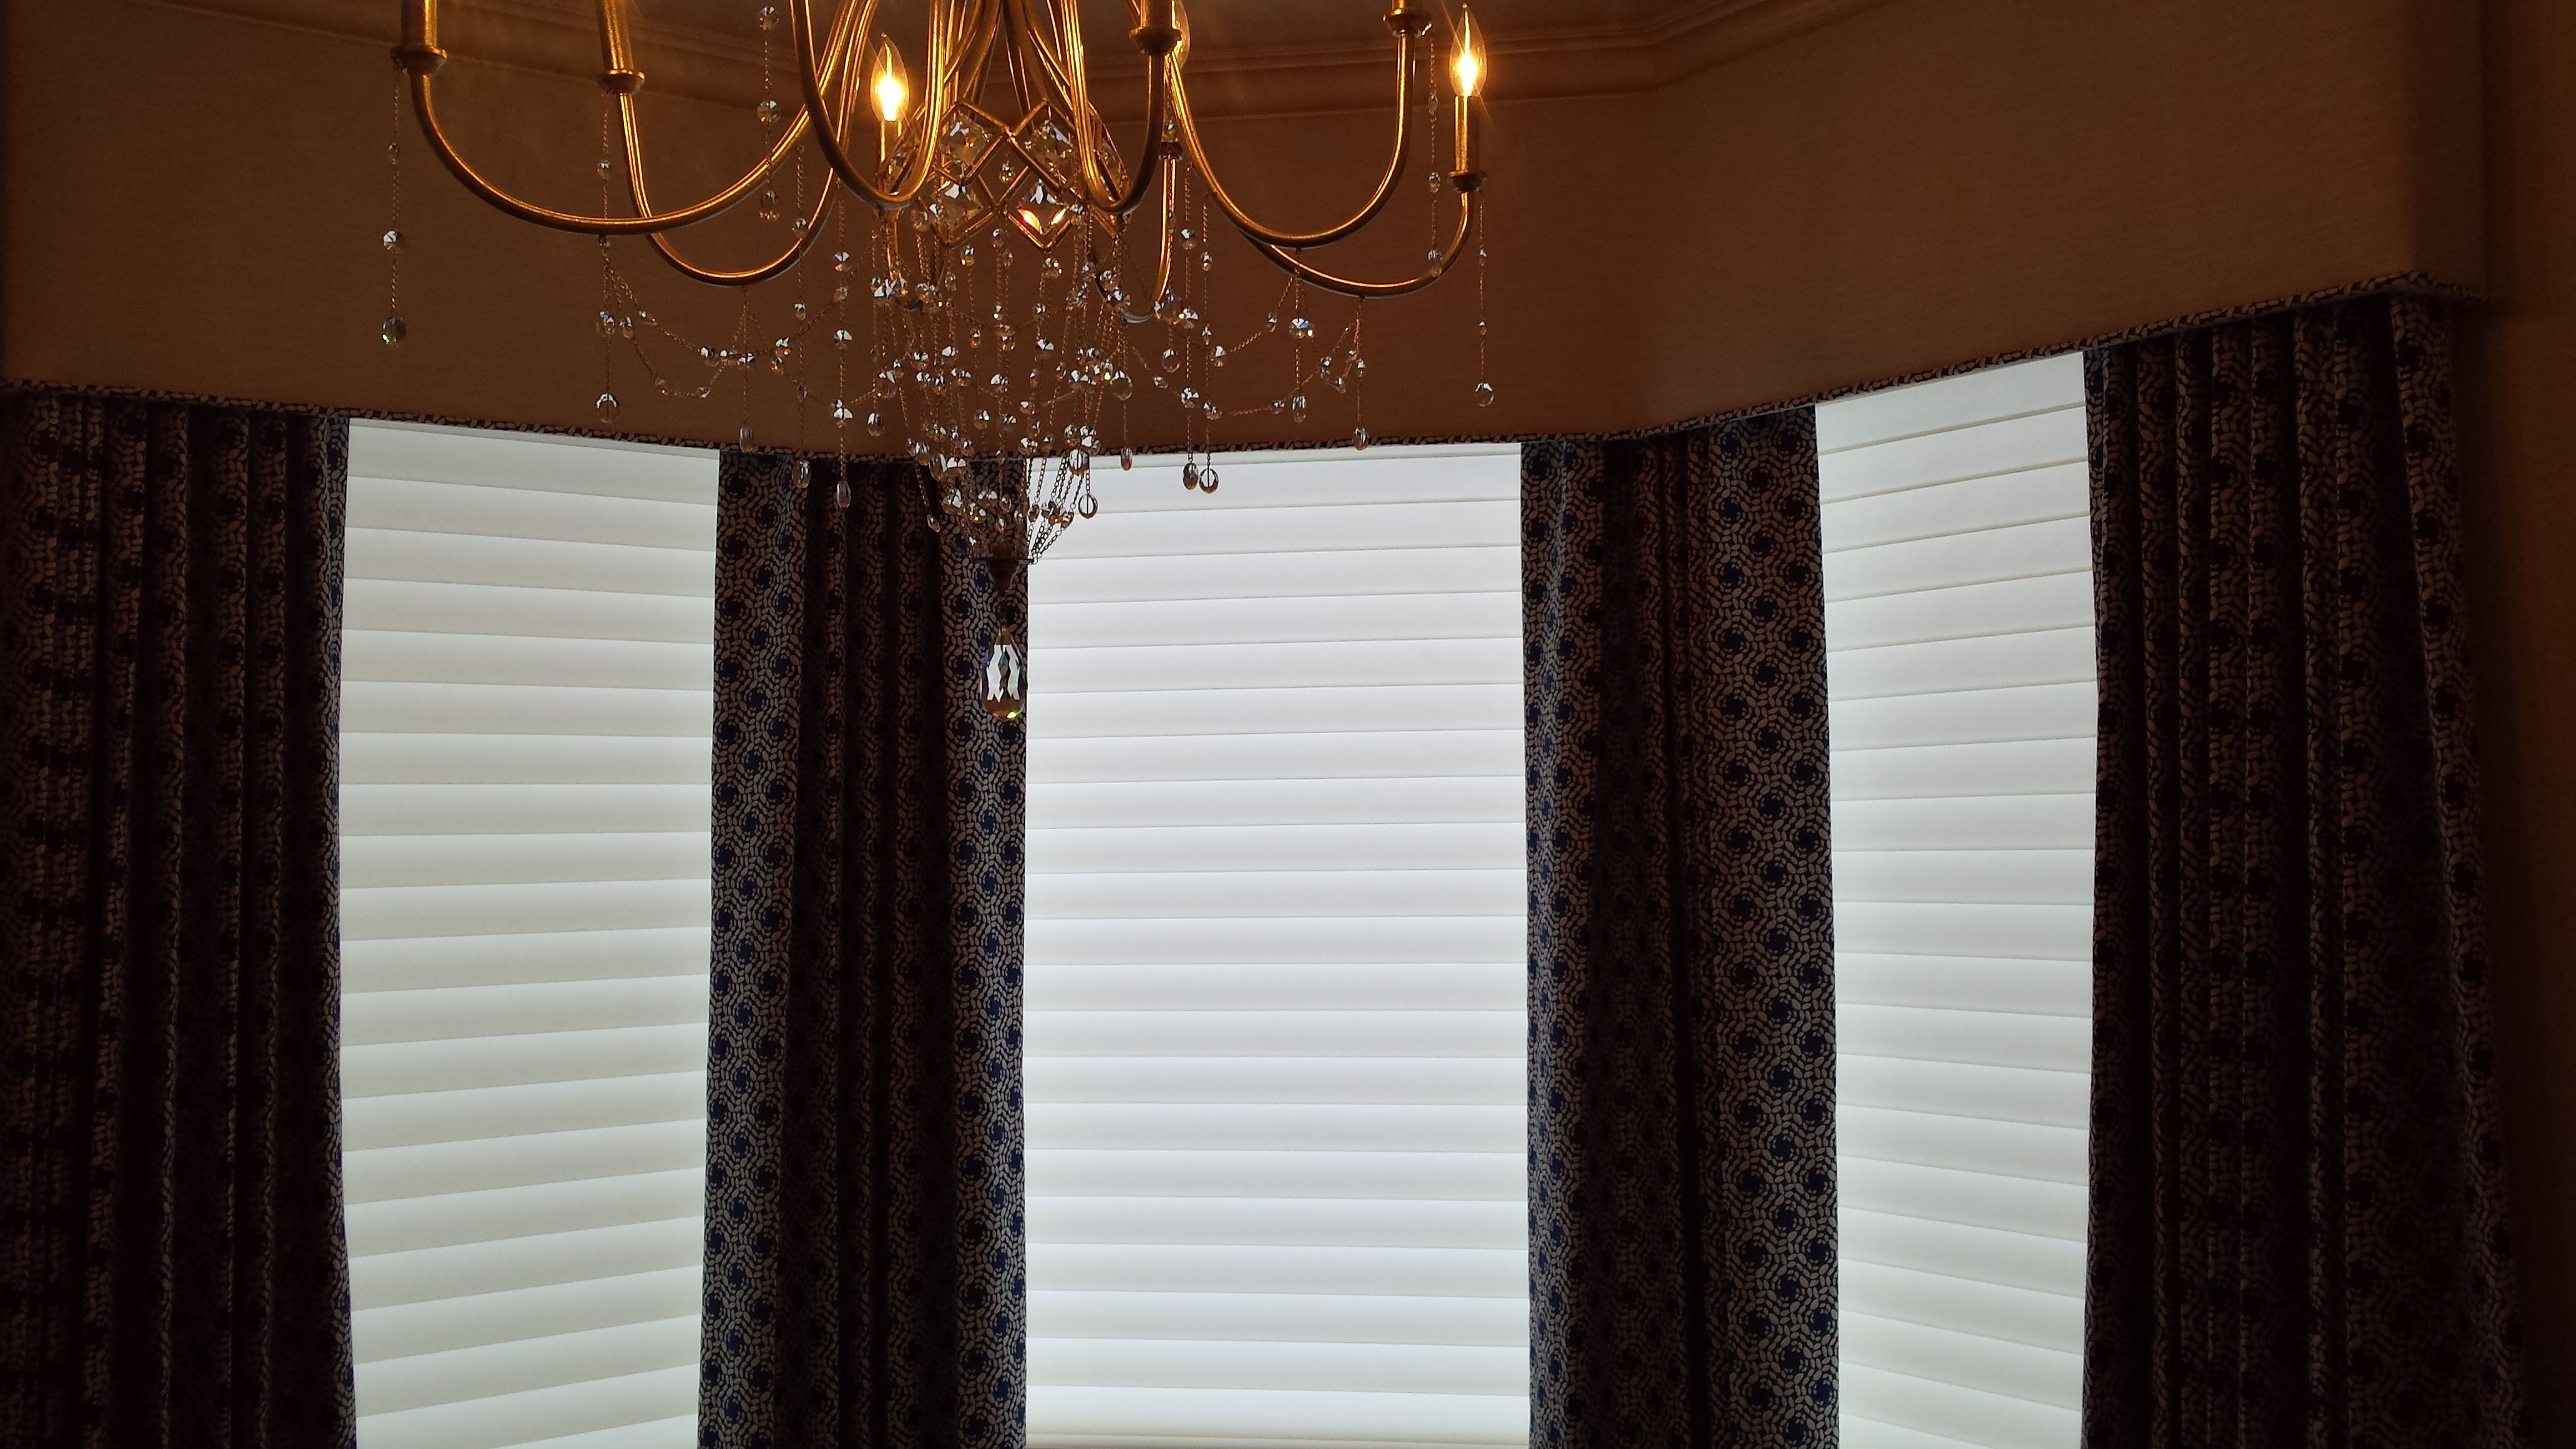 Hunter Douglas Silhouettes w/ Stationary Panels and Cornice